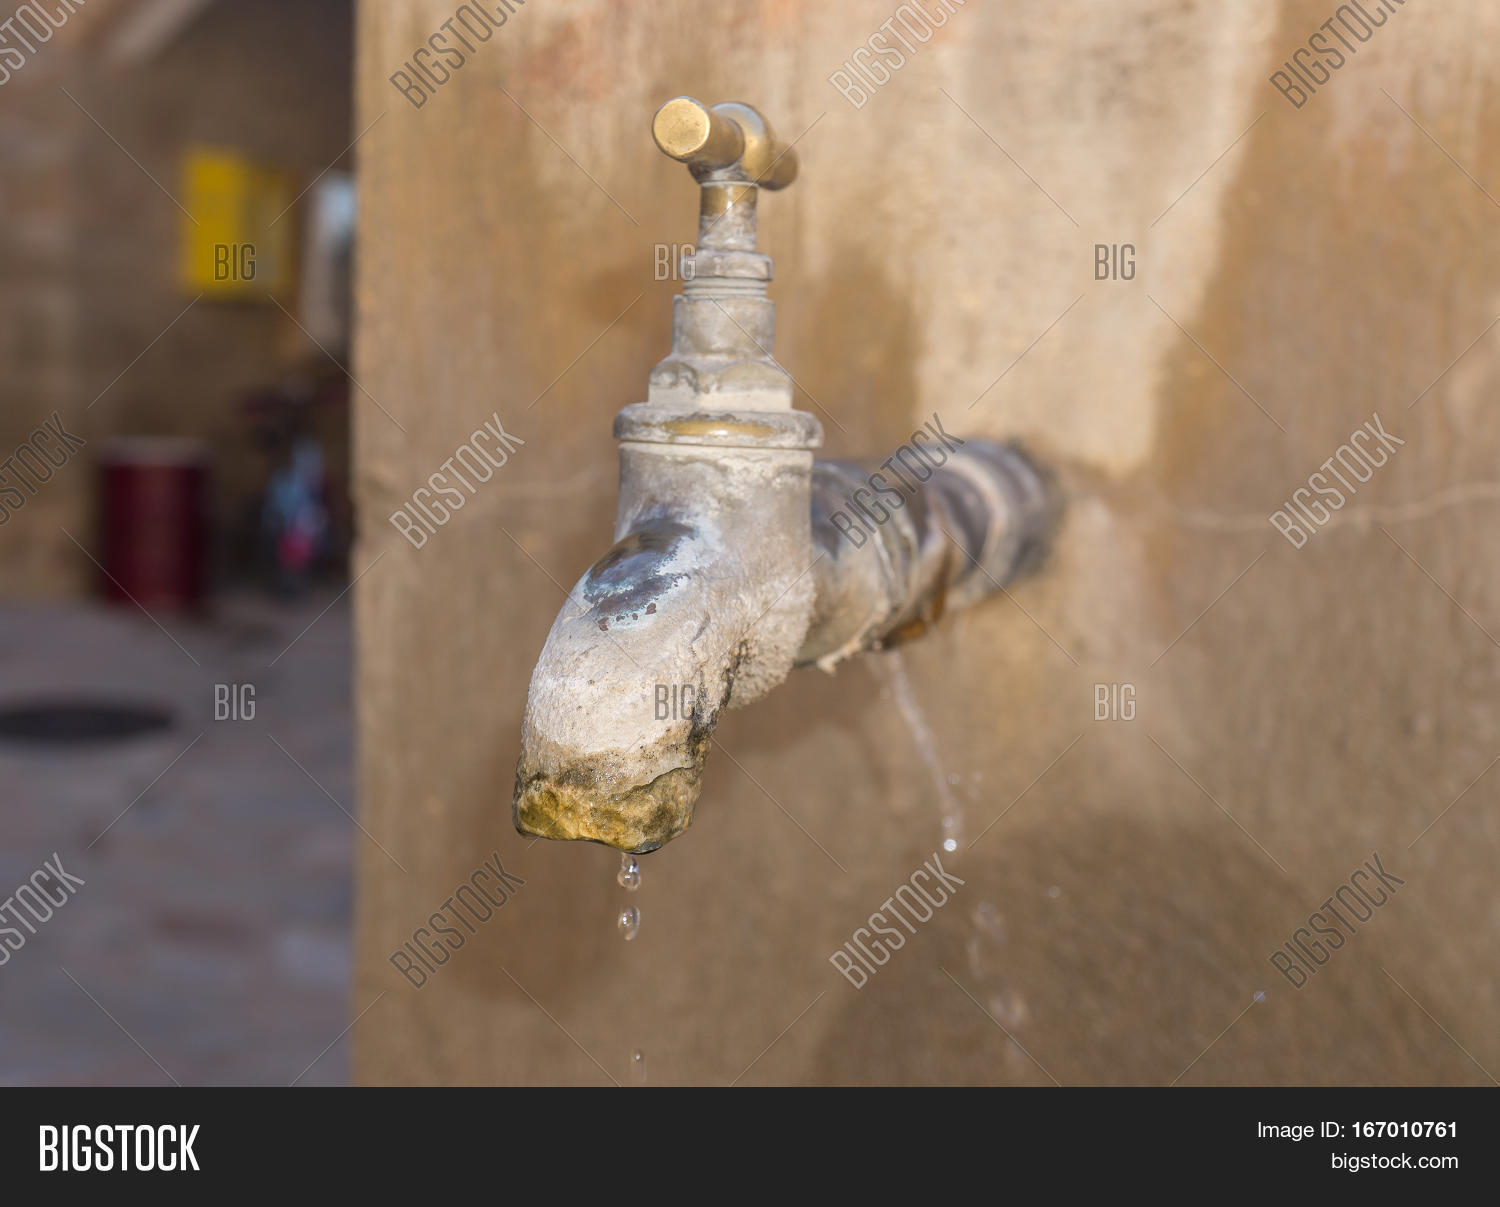 Old Faucet Lime Image & Photo (Free Trial) | Bigstock